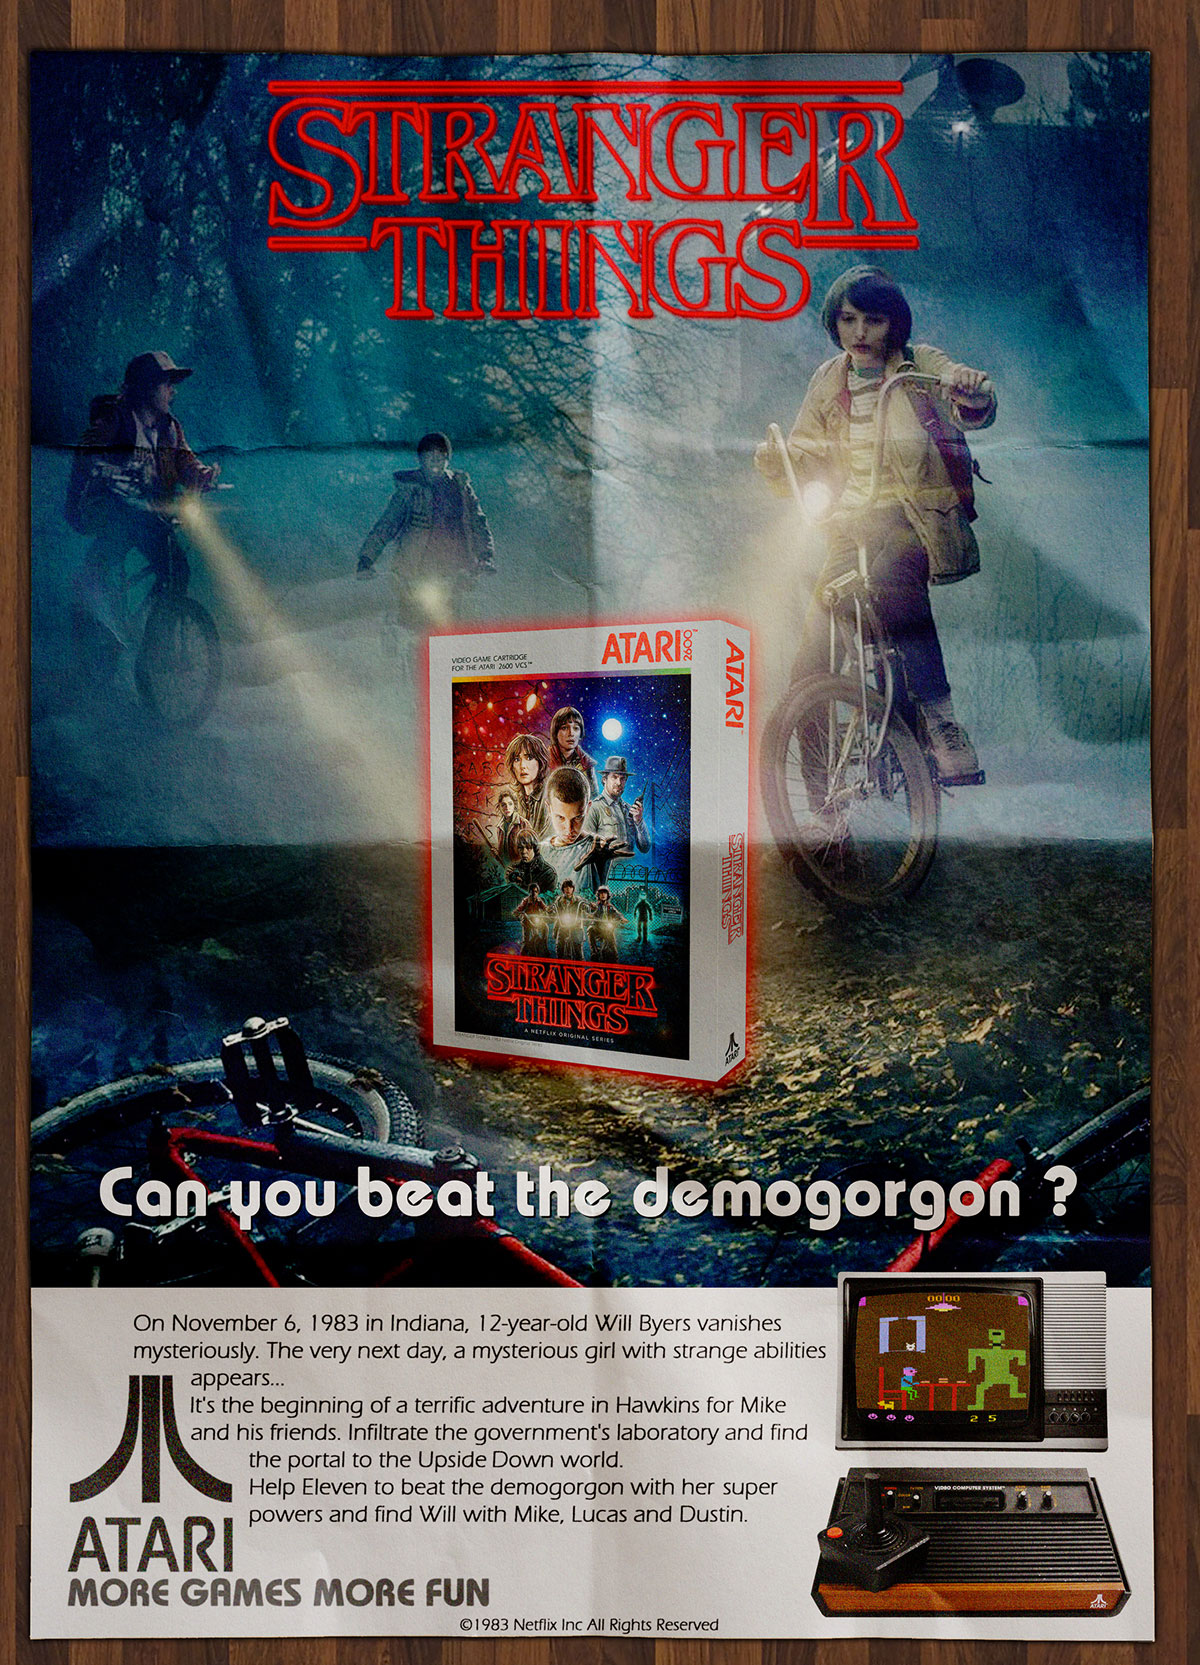 Continuing the retro theme, Martin Gendre made this poster advertising the Atari 2600 video game version of Stranger Things that would have definitely happened if the series came out in the 1980s.